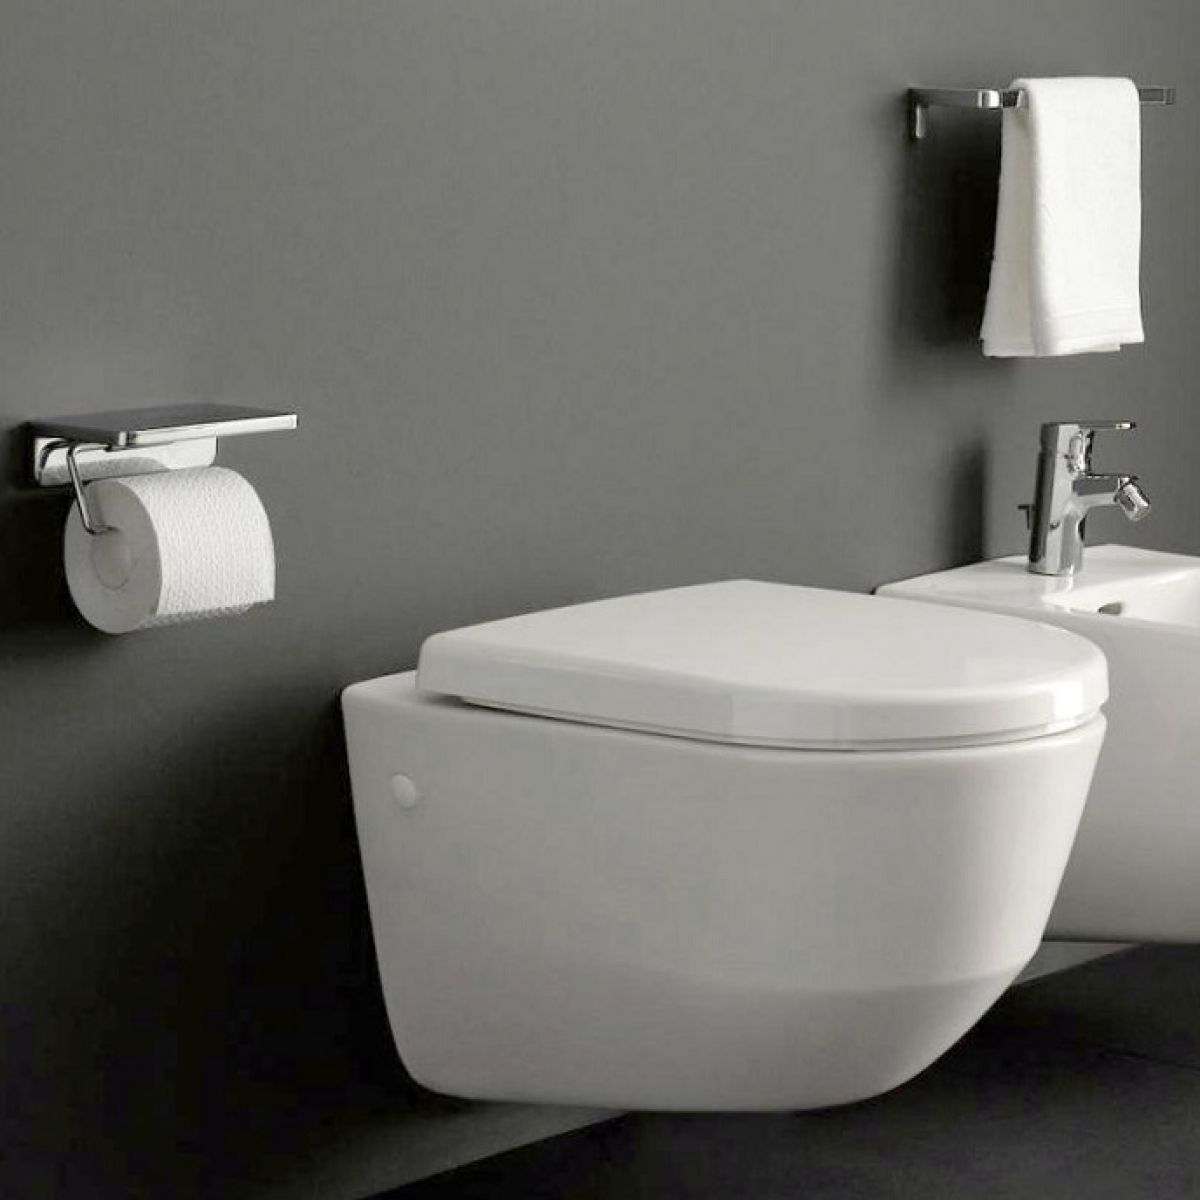 laufen pro wall hung rimless toilet uk bathrooms. Black Bedroom Furniture Sets. Home Design Ideas